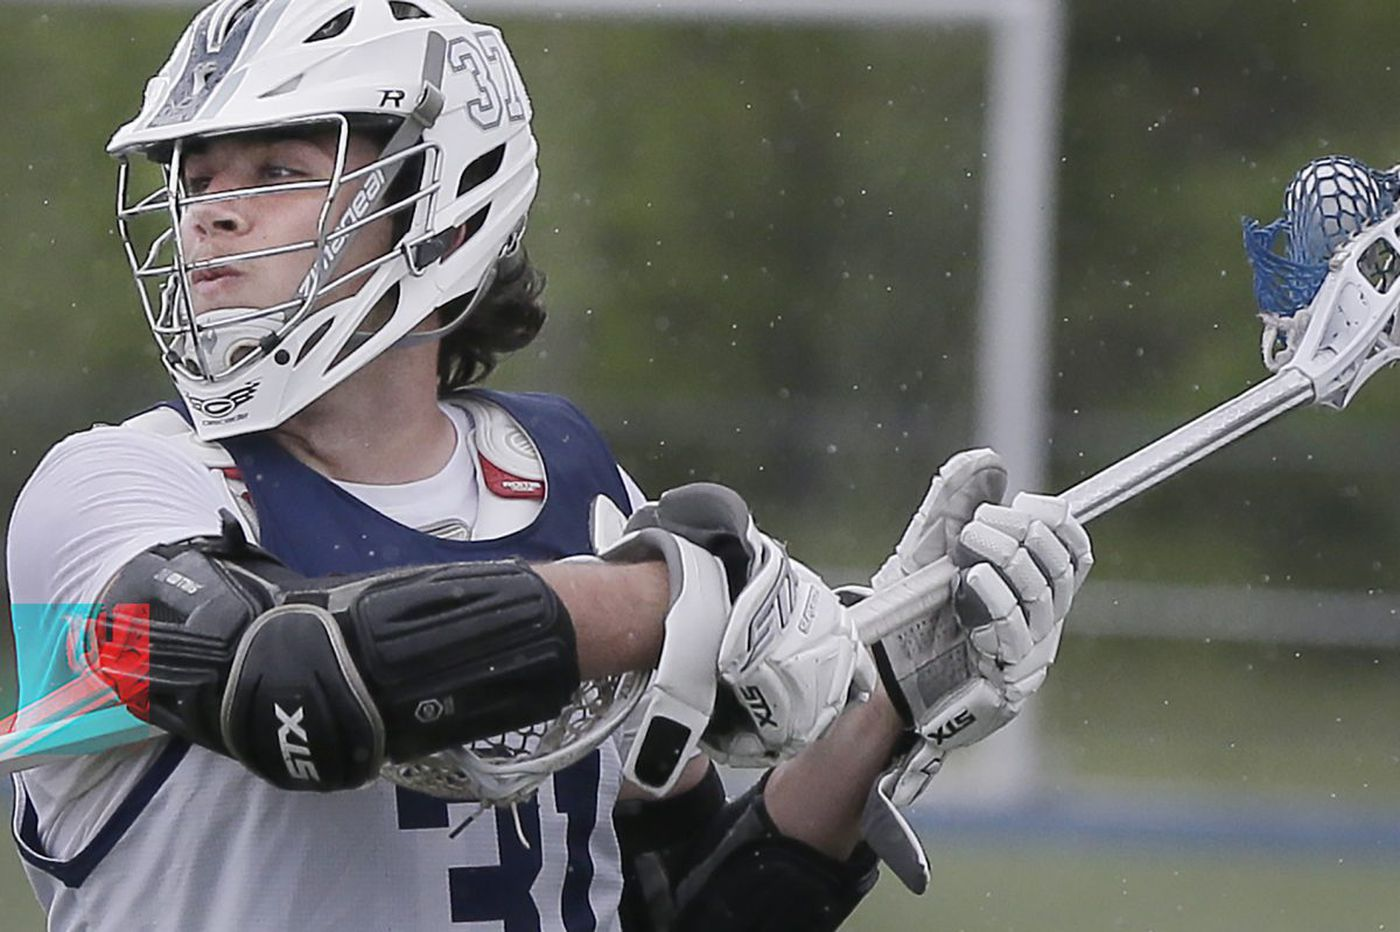 St. Augustine's David Burr found lacrosse by accident